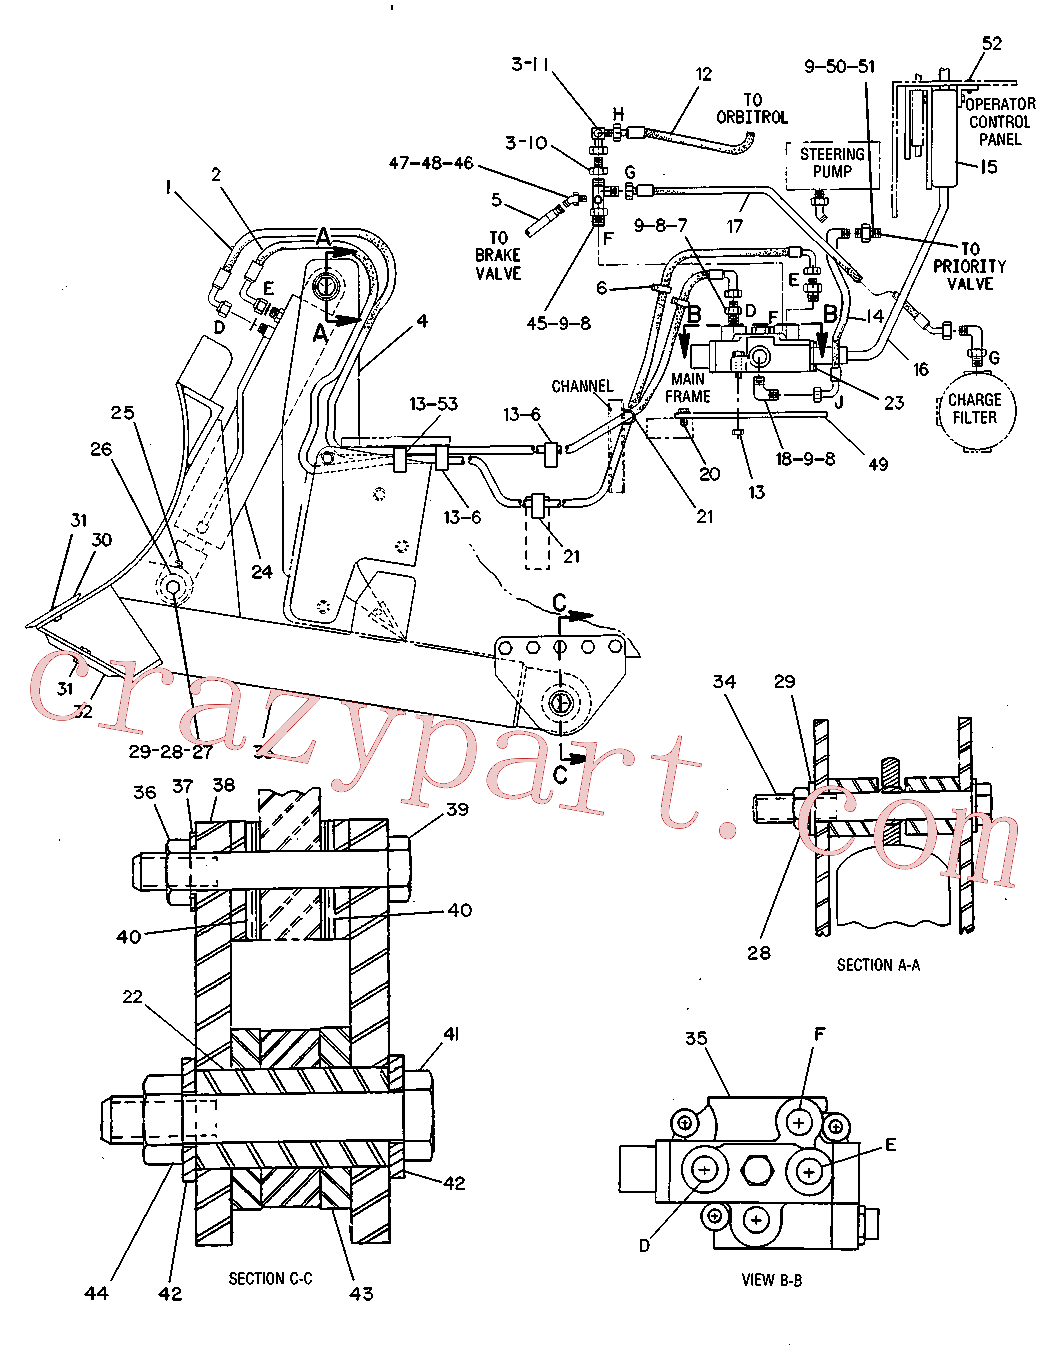 CAT 6V-8995 for 771D Quarry Truck(OHT) hydraulic system 7R-2928 Assembly